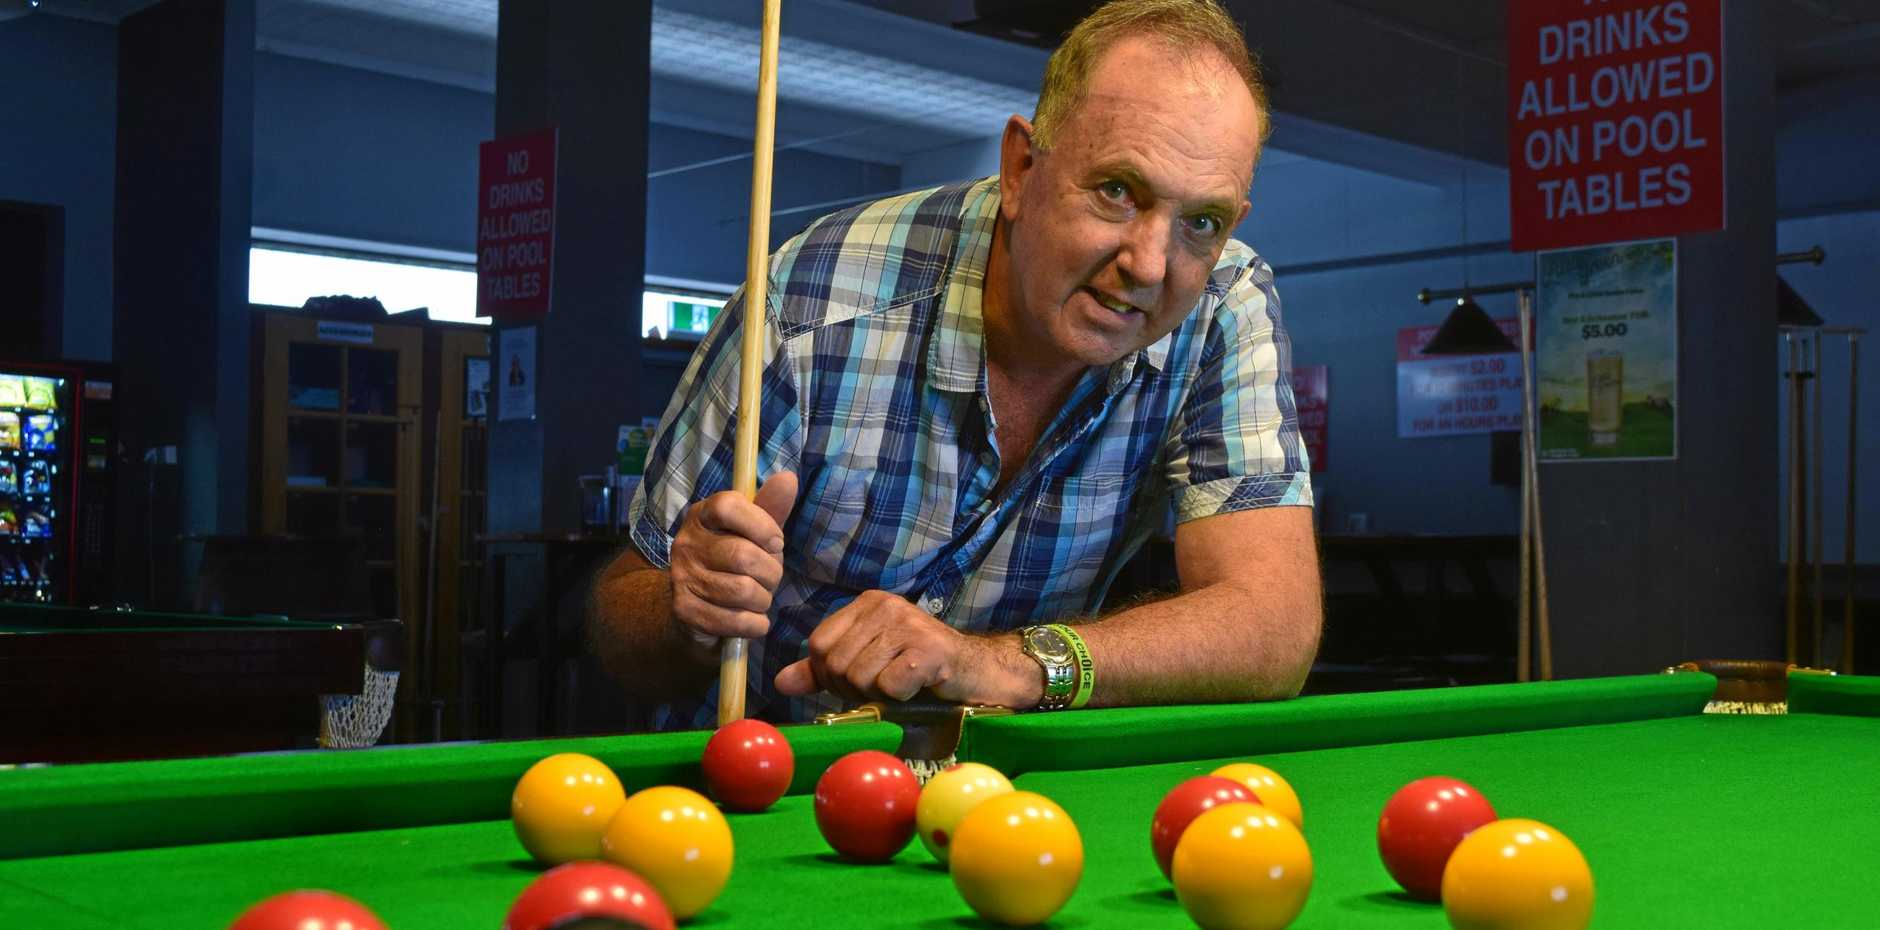 TURNAROUND: Paul Baxter is now investing in his business just to survive, including installing new pool tables and attracting bands for the younger demographic.